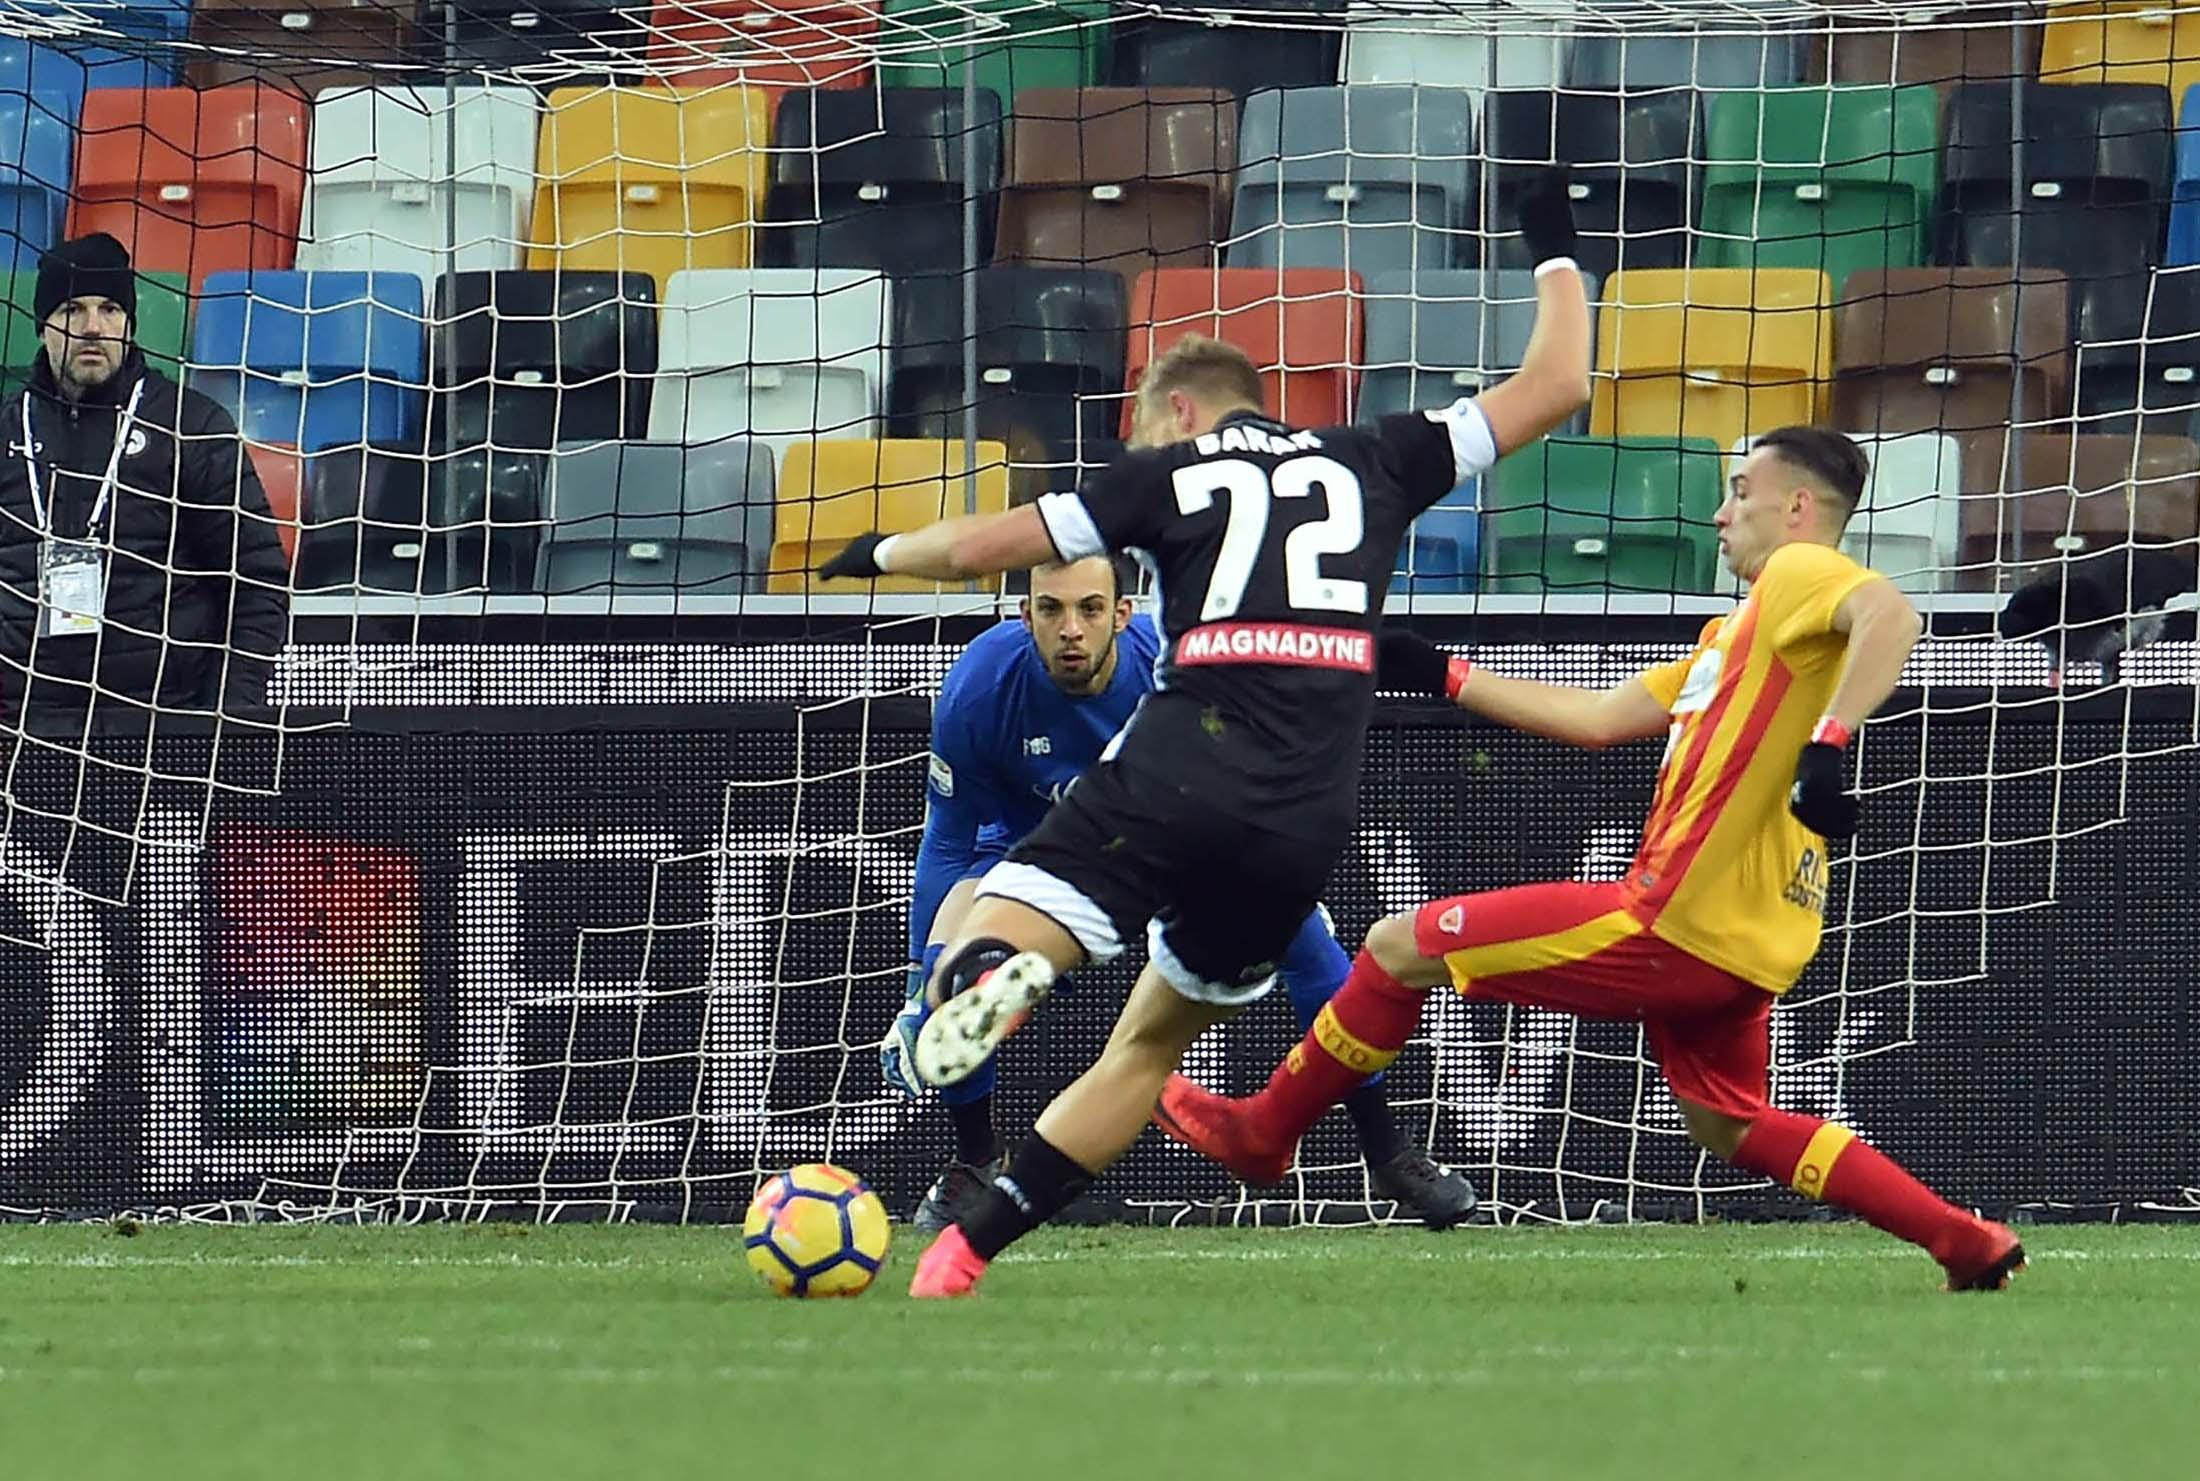 Serie A, Udinese-Benevento 2-0